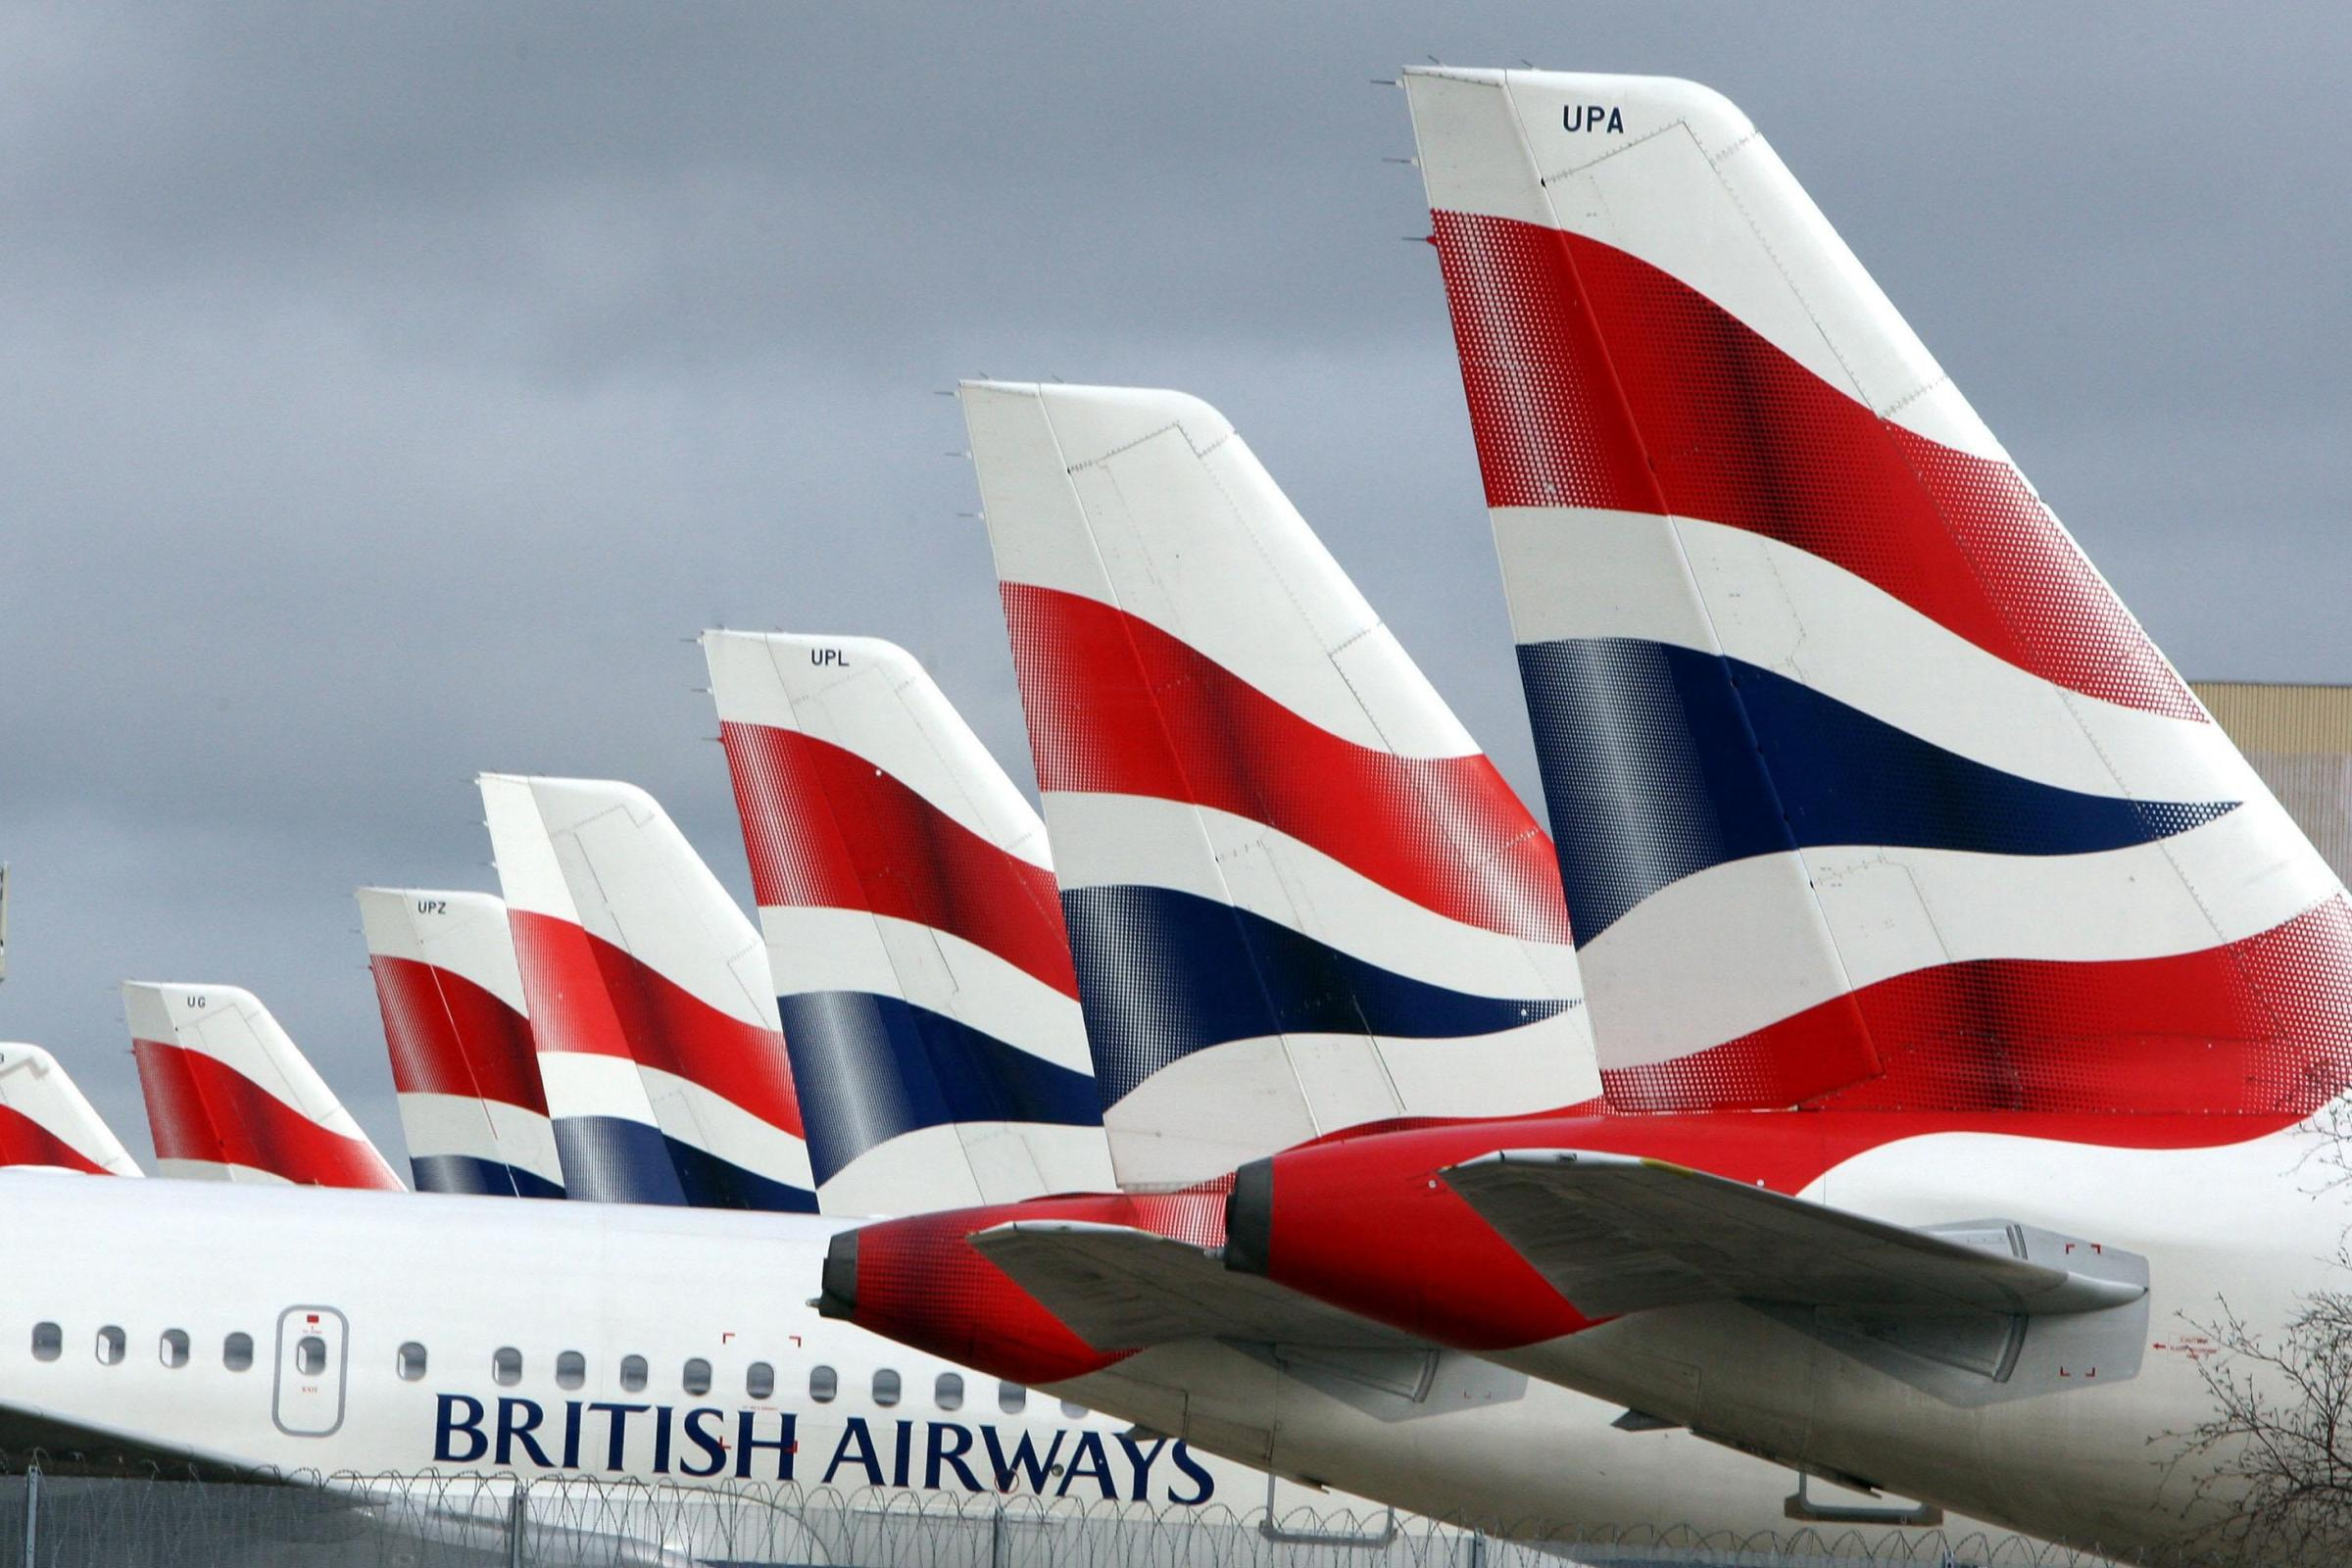 Travel disruption on cards as BA pilots hold first-ever